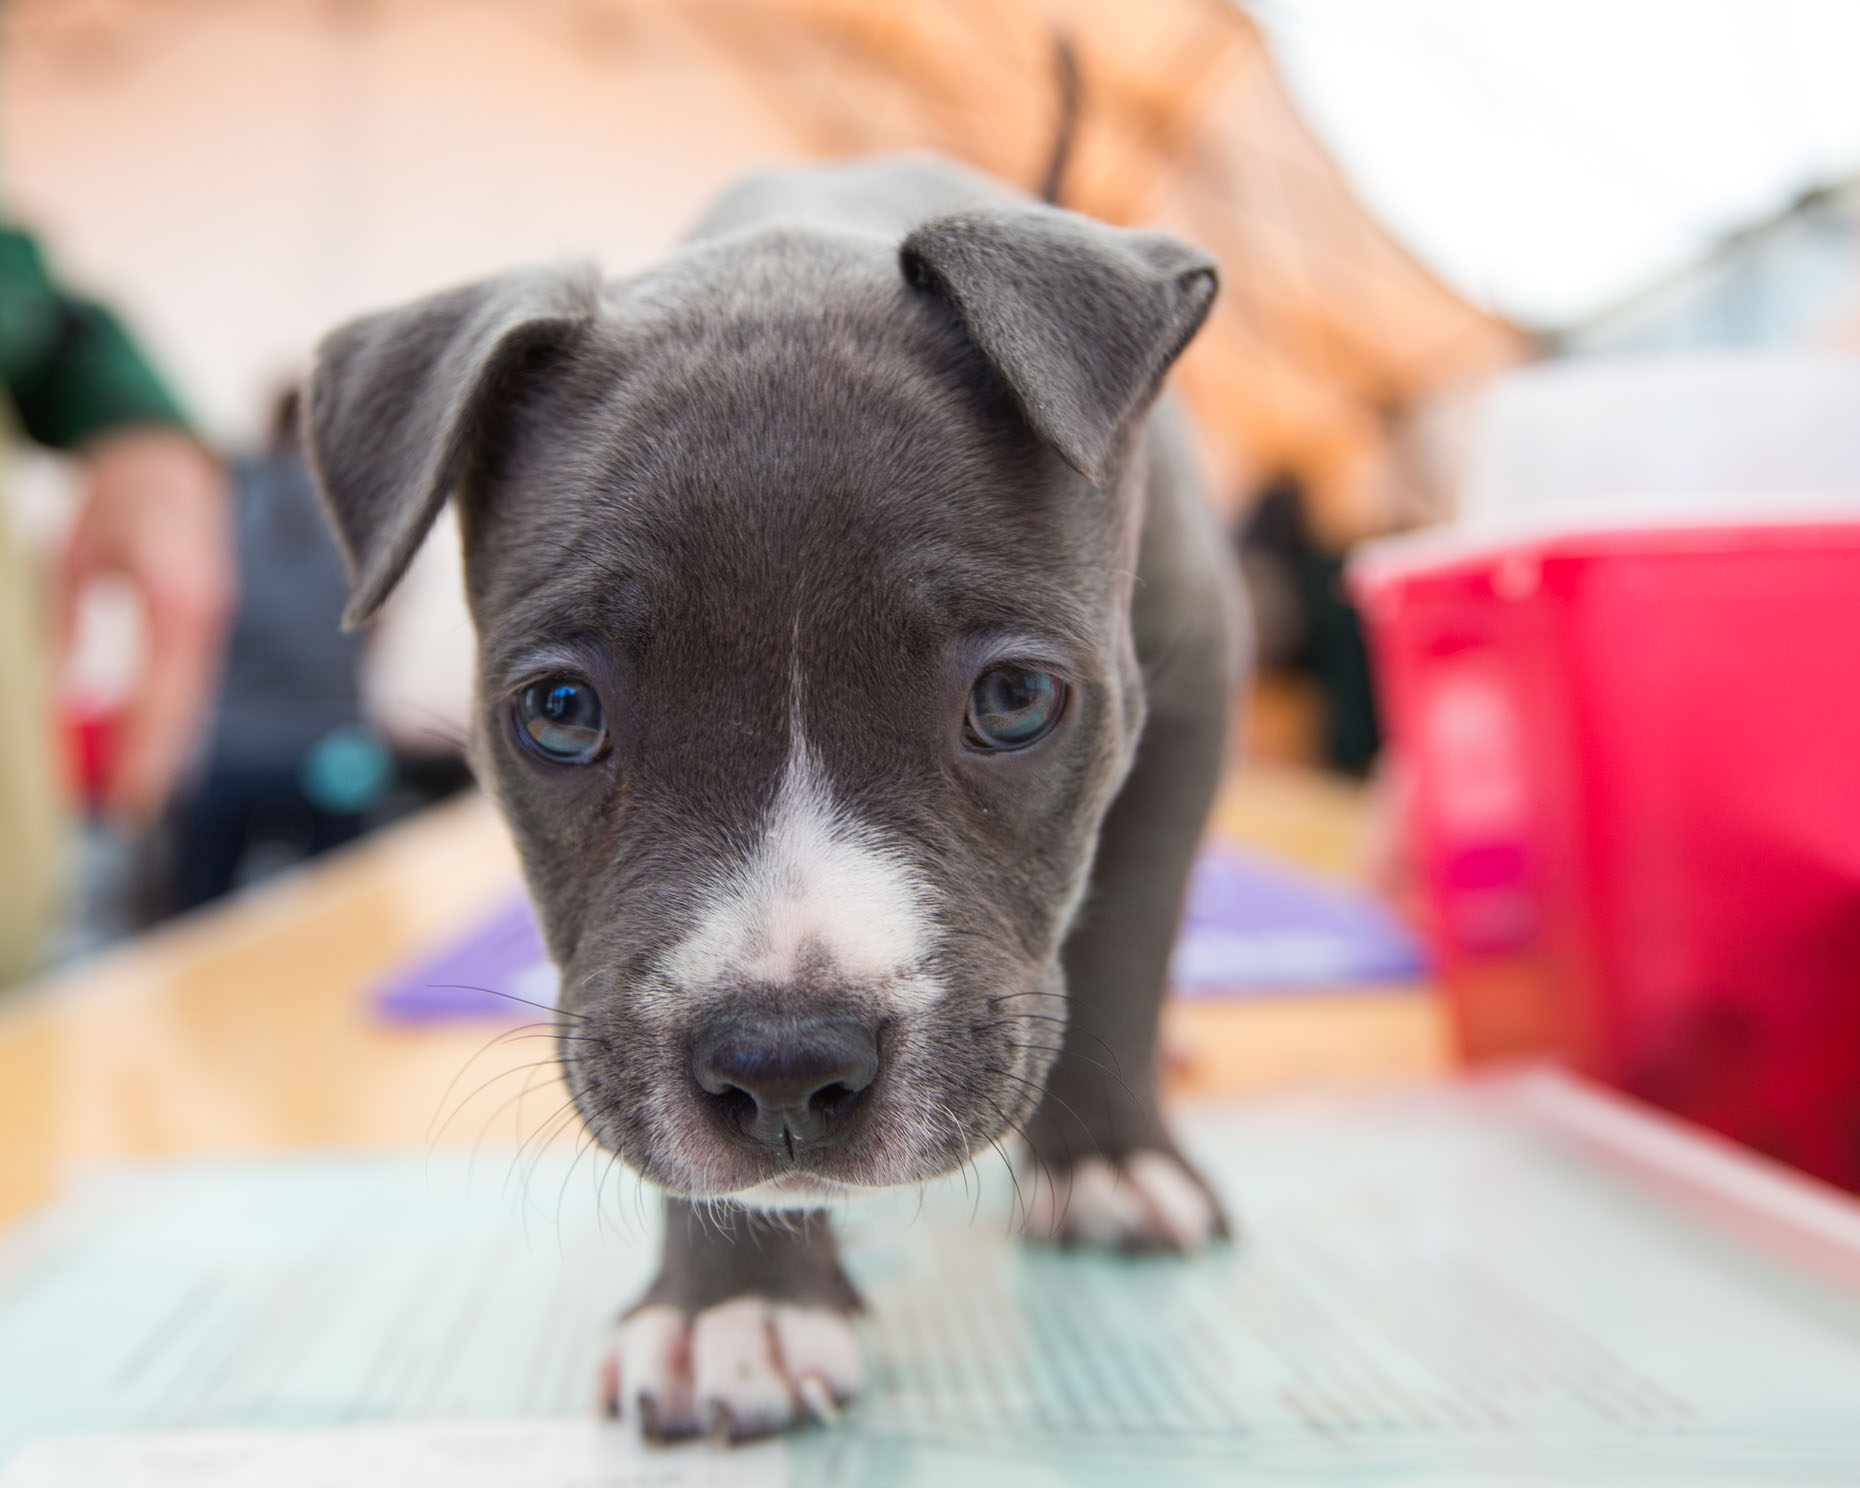 Dog Photography | Close-up of Puppy by Mark Rogers